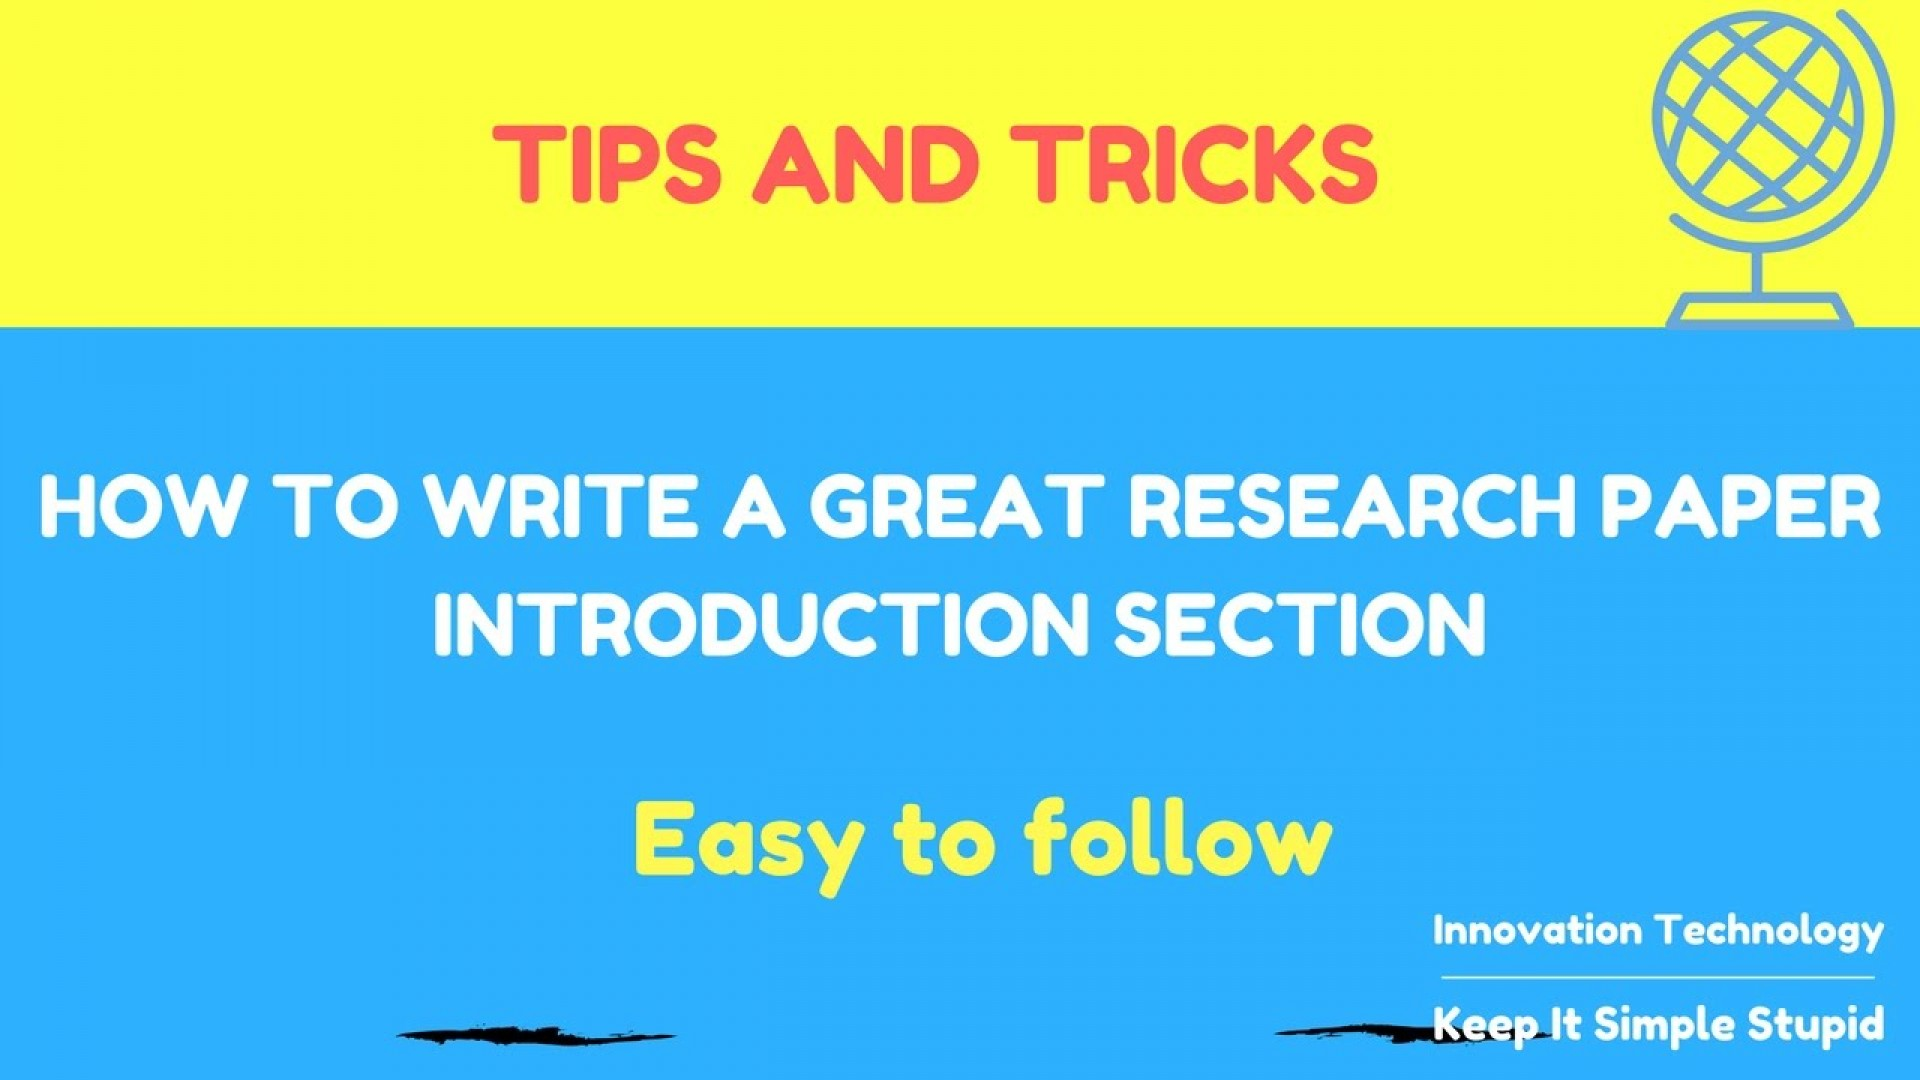 006 Research Paper Tips Awesome College For Students Writing A 1920